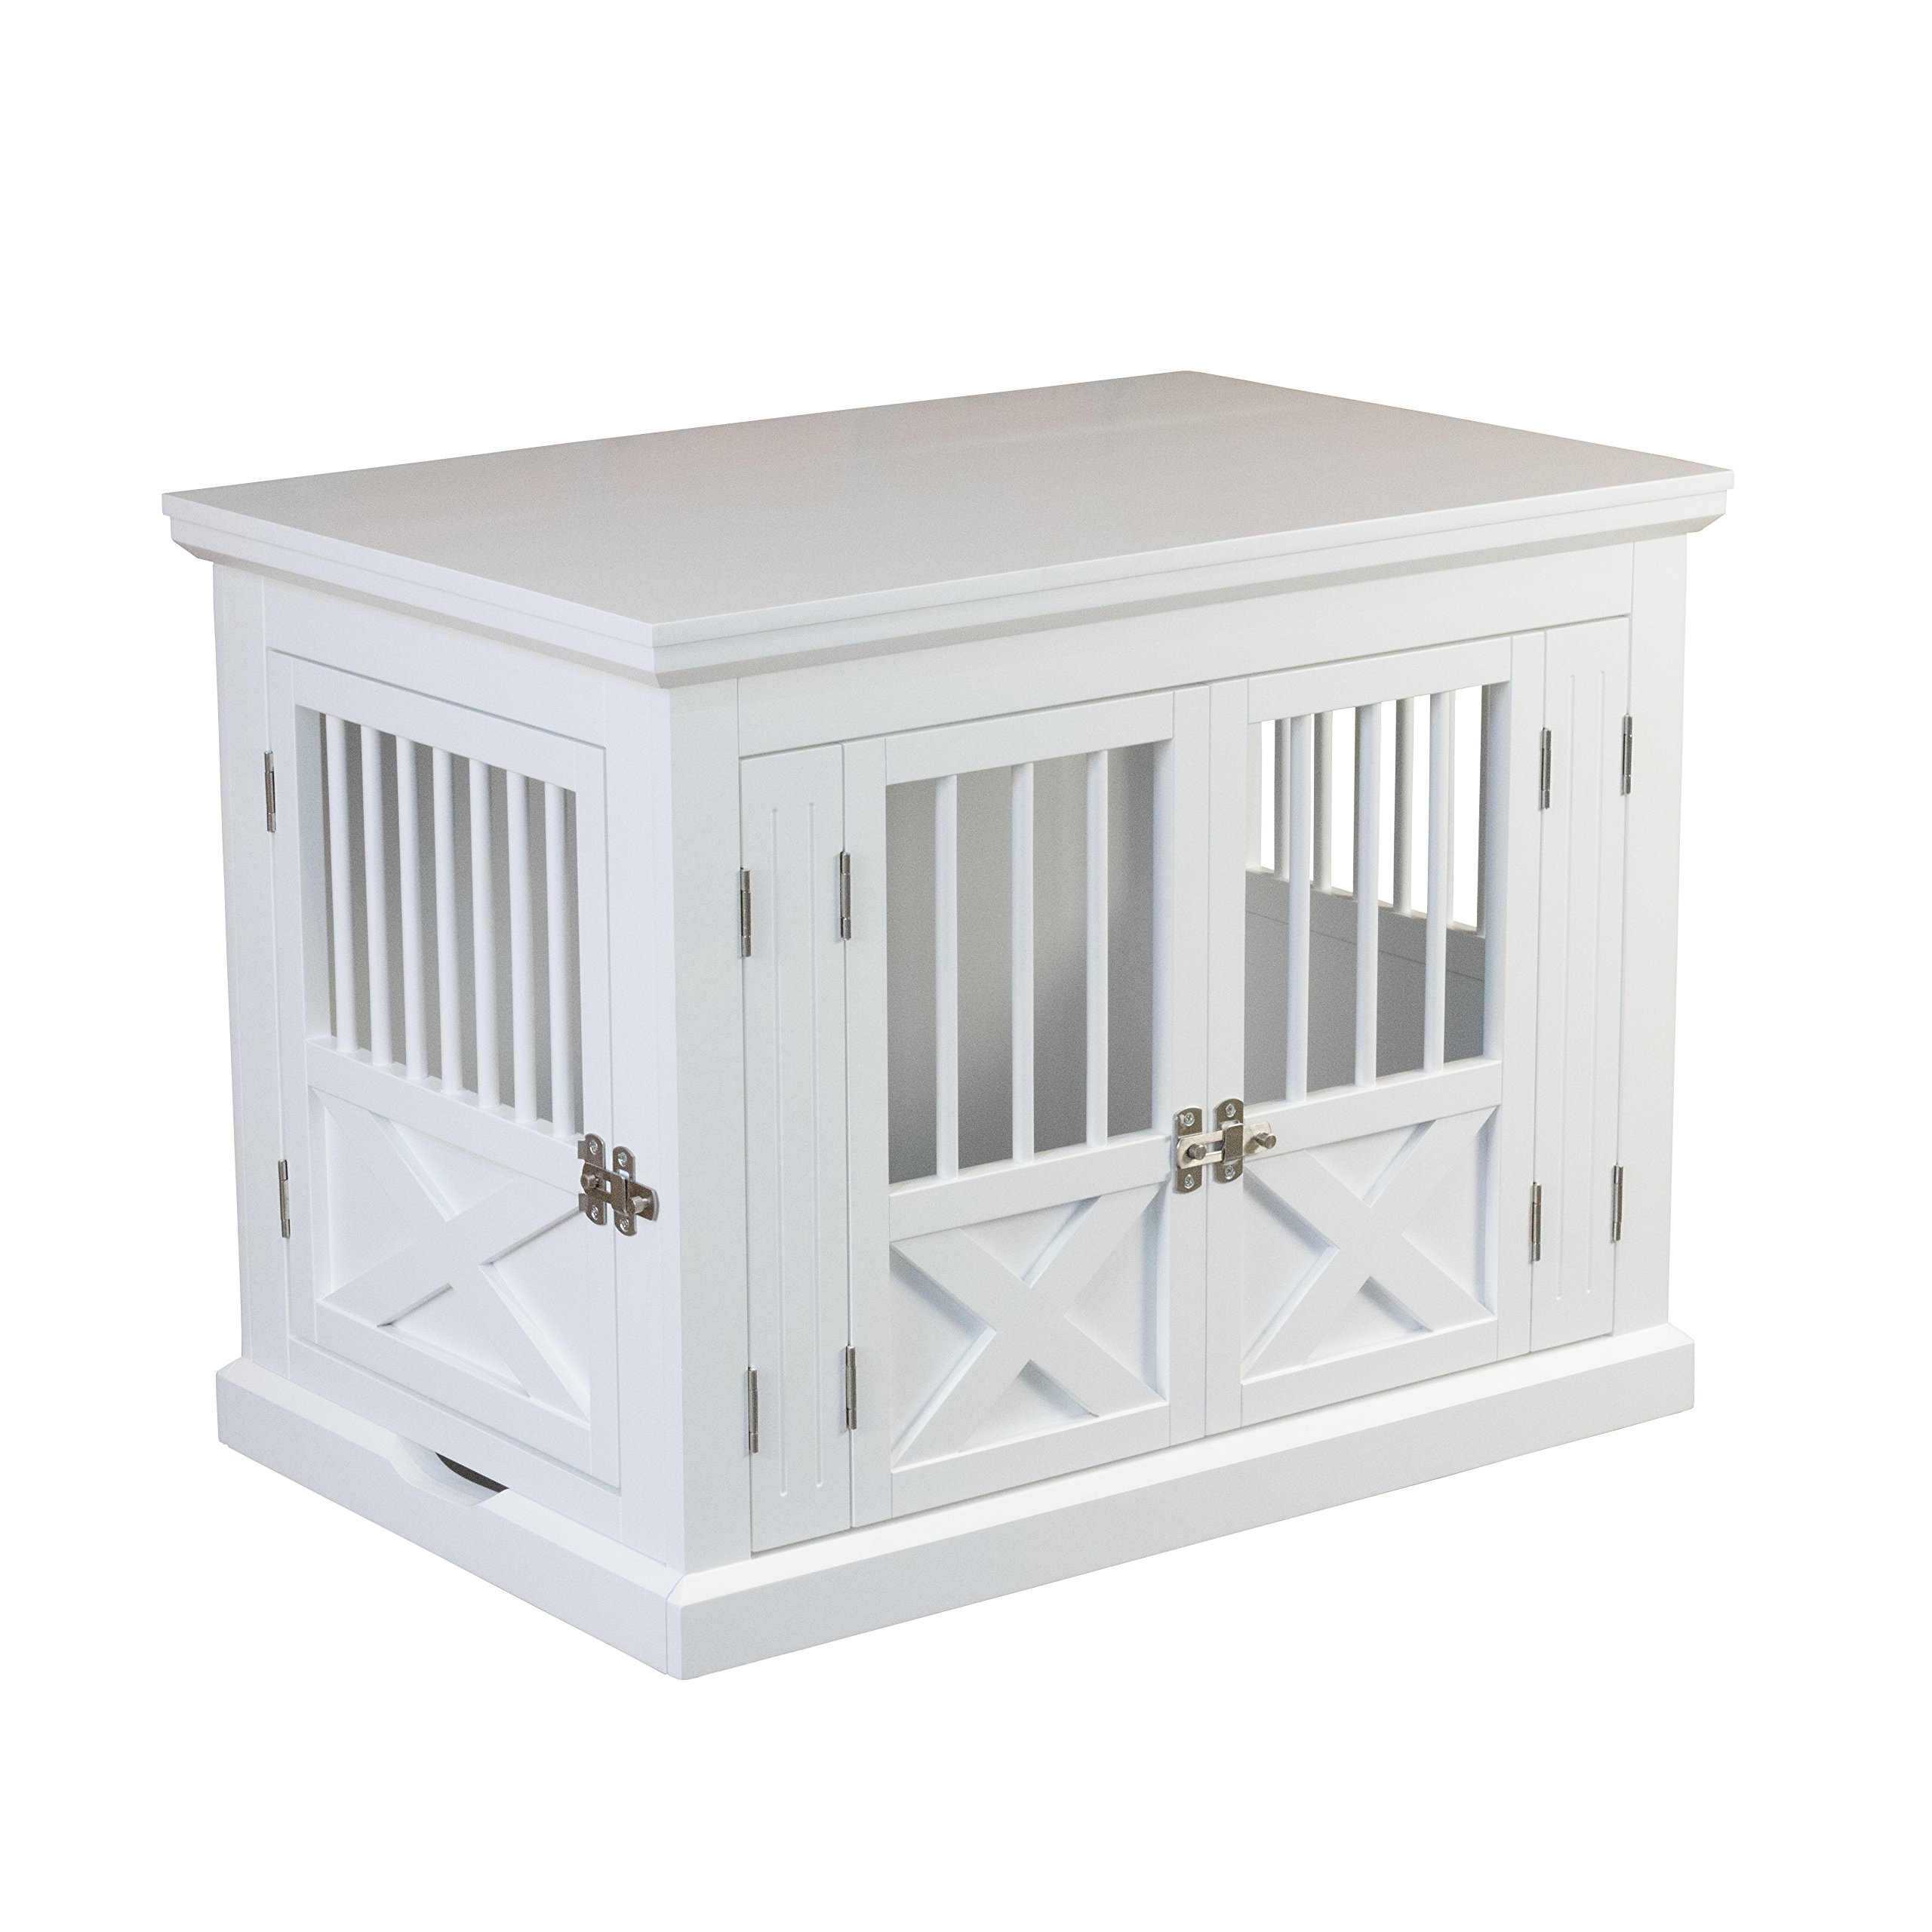 zoovilla Merry Products Triple Door Medium Dog Crate, Dog Kennel, Dog Cage by zoovilla